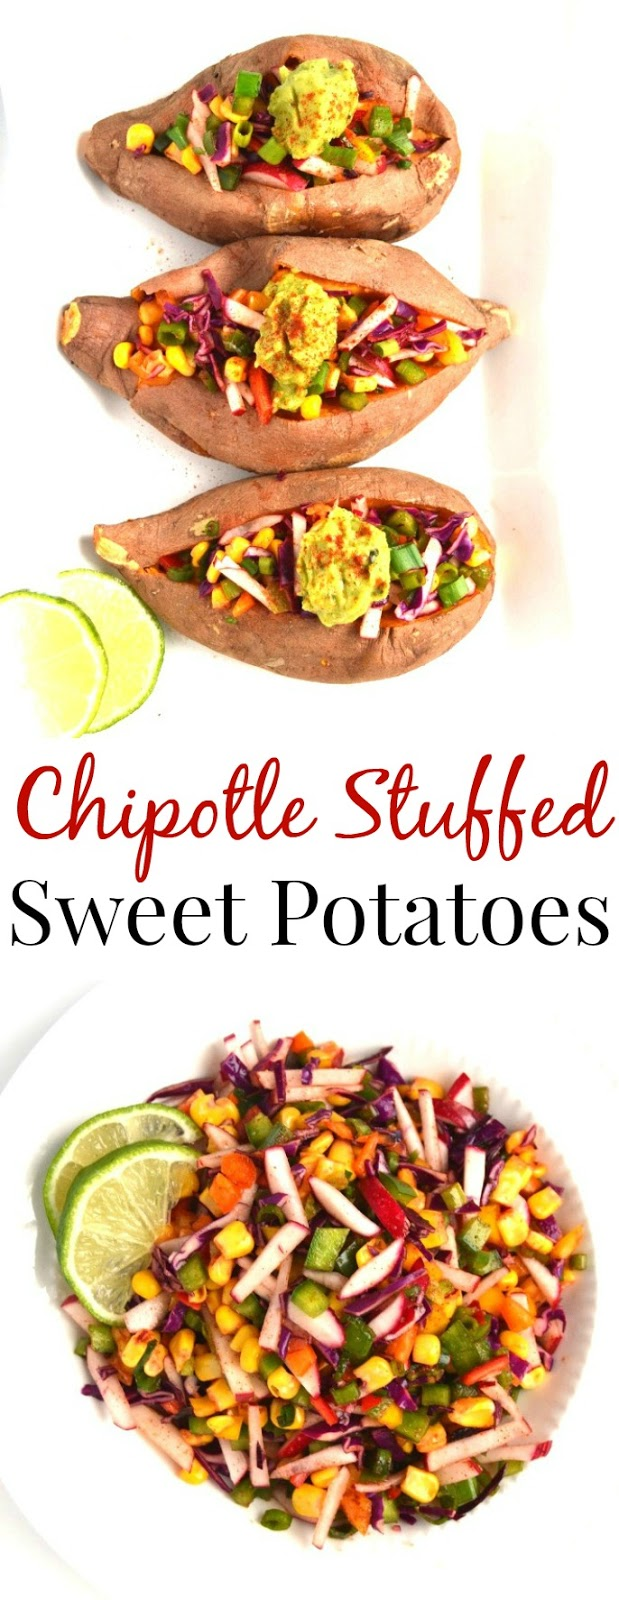 These Chipotle Stuffed Sweet Potatoes are fresh and full of flavor! They are packed full of vegetables and topped with flavorful guacamole. www.nutritionistreviews.com